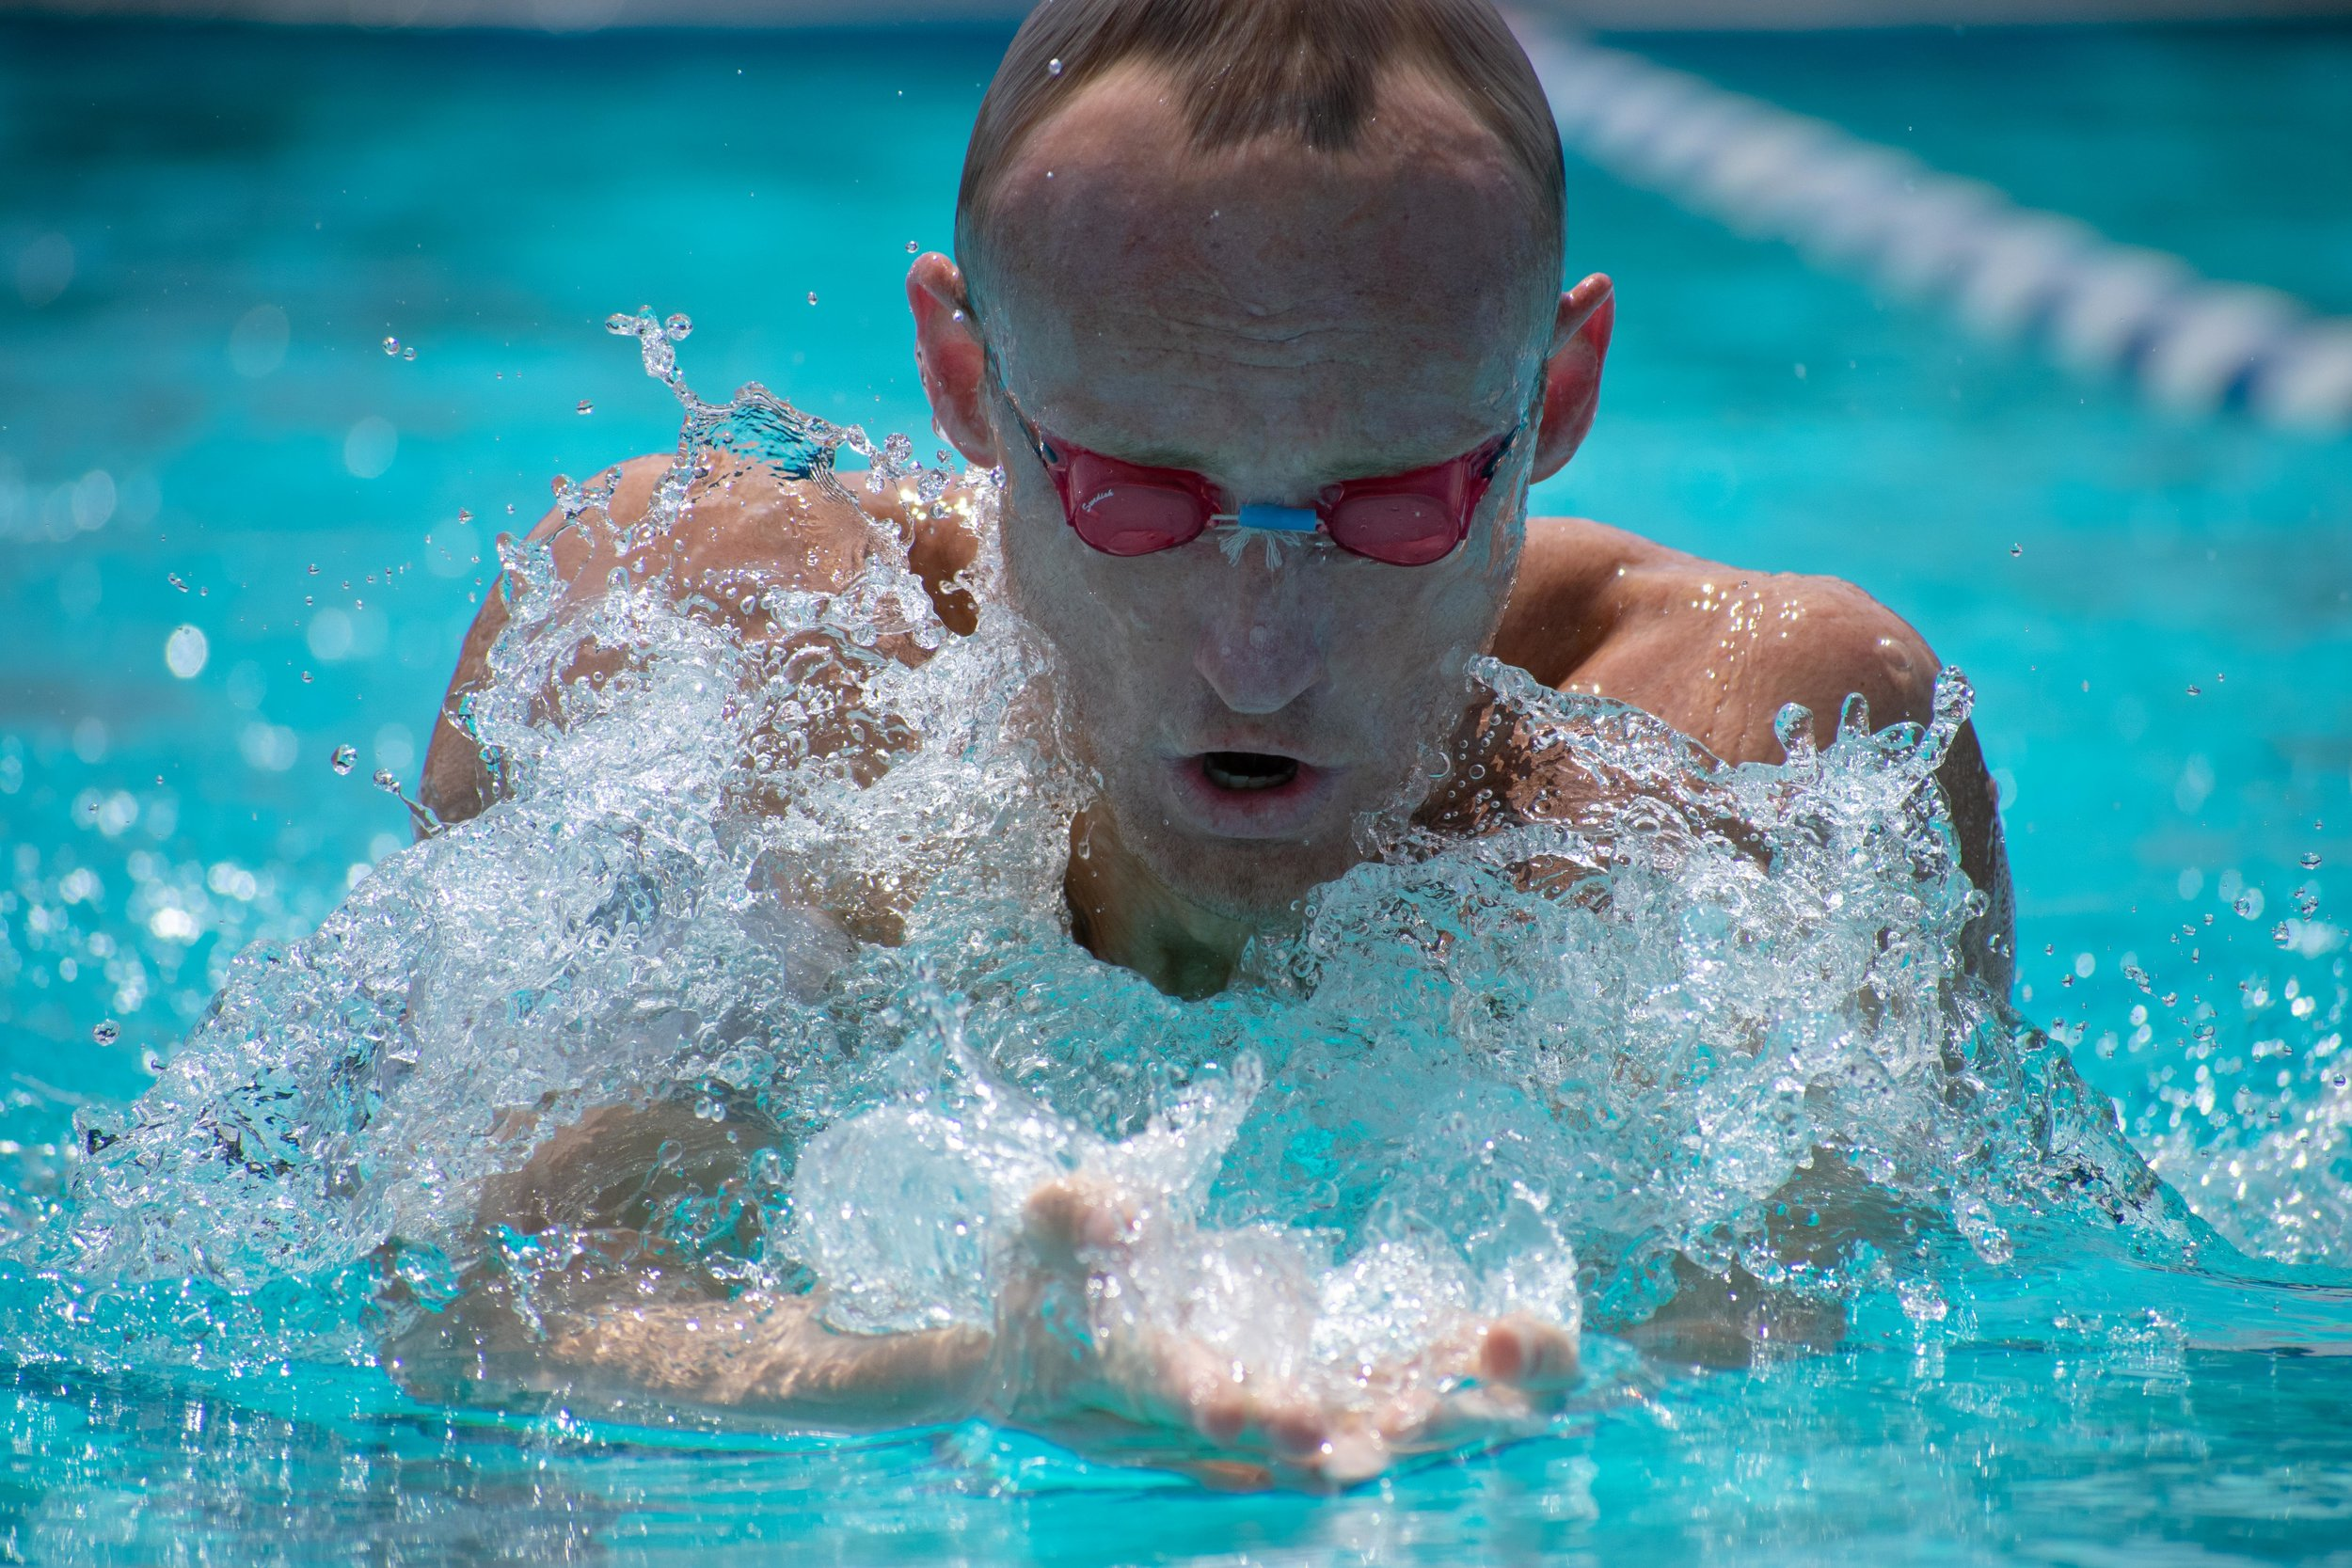 Brian Mcateer practices his breaststroke during practice on Tuesday, April 24, 2018 at the Santa Monica Swim Center in Santa Monica, California. Mcateer will be headed to the CCCAA Swim and Dive State Championships, which will be held from Monday, May 3 to Saturday, May 6 to swim the 100 and 200-yard breaststroke and the 200-yard individual medley. (Ethan Lauren/Corsair Photo)